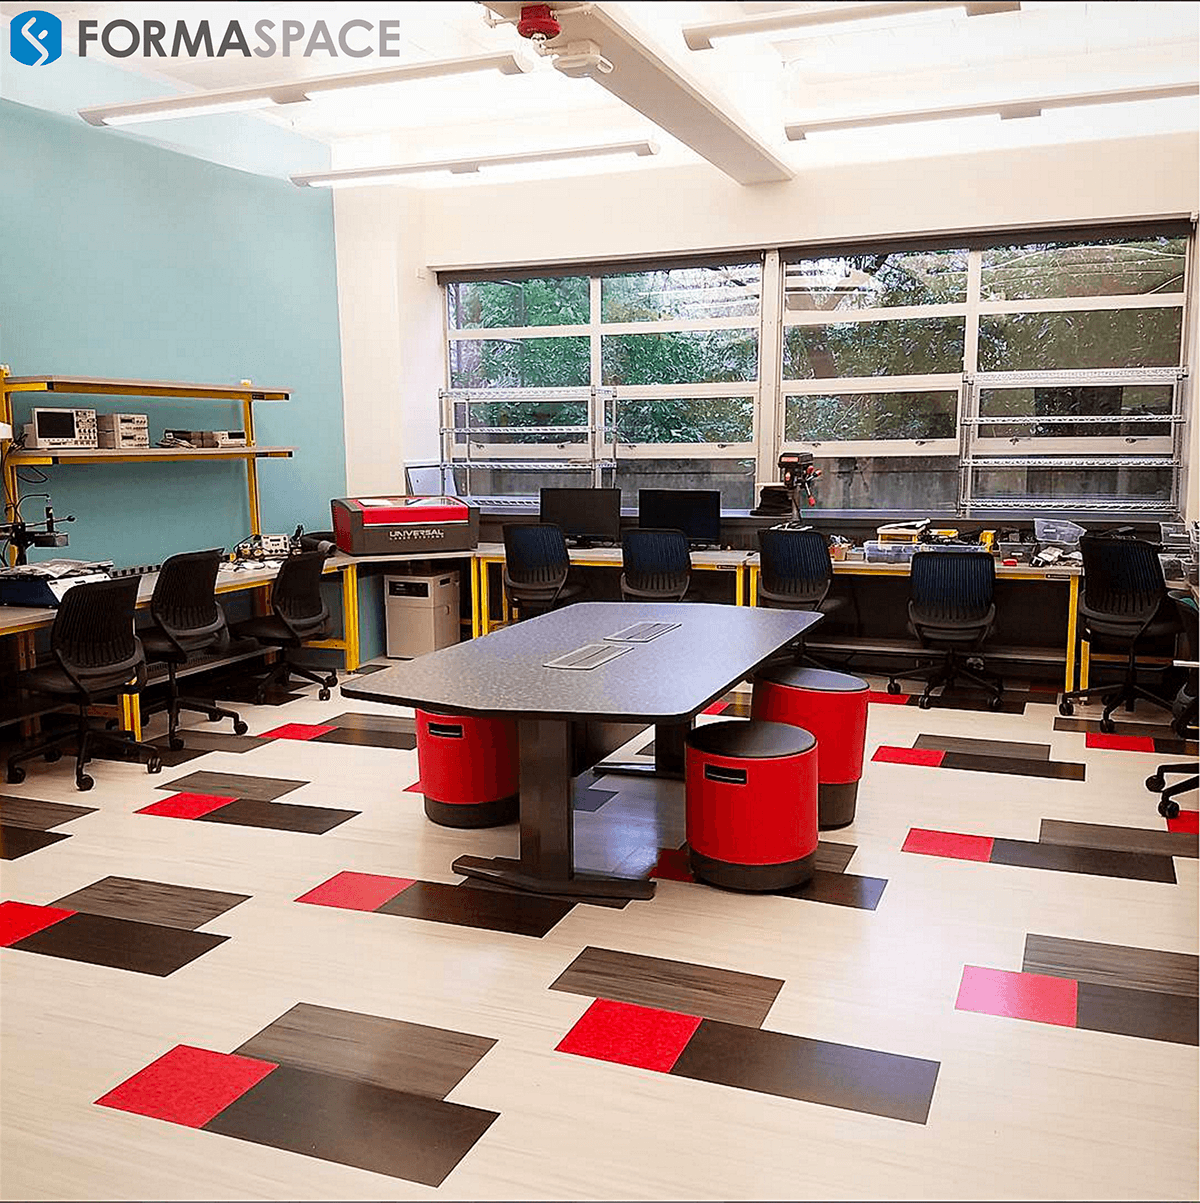 What are the Must Haves in a Makerspace? | Formaspace